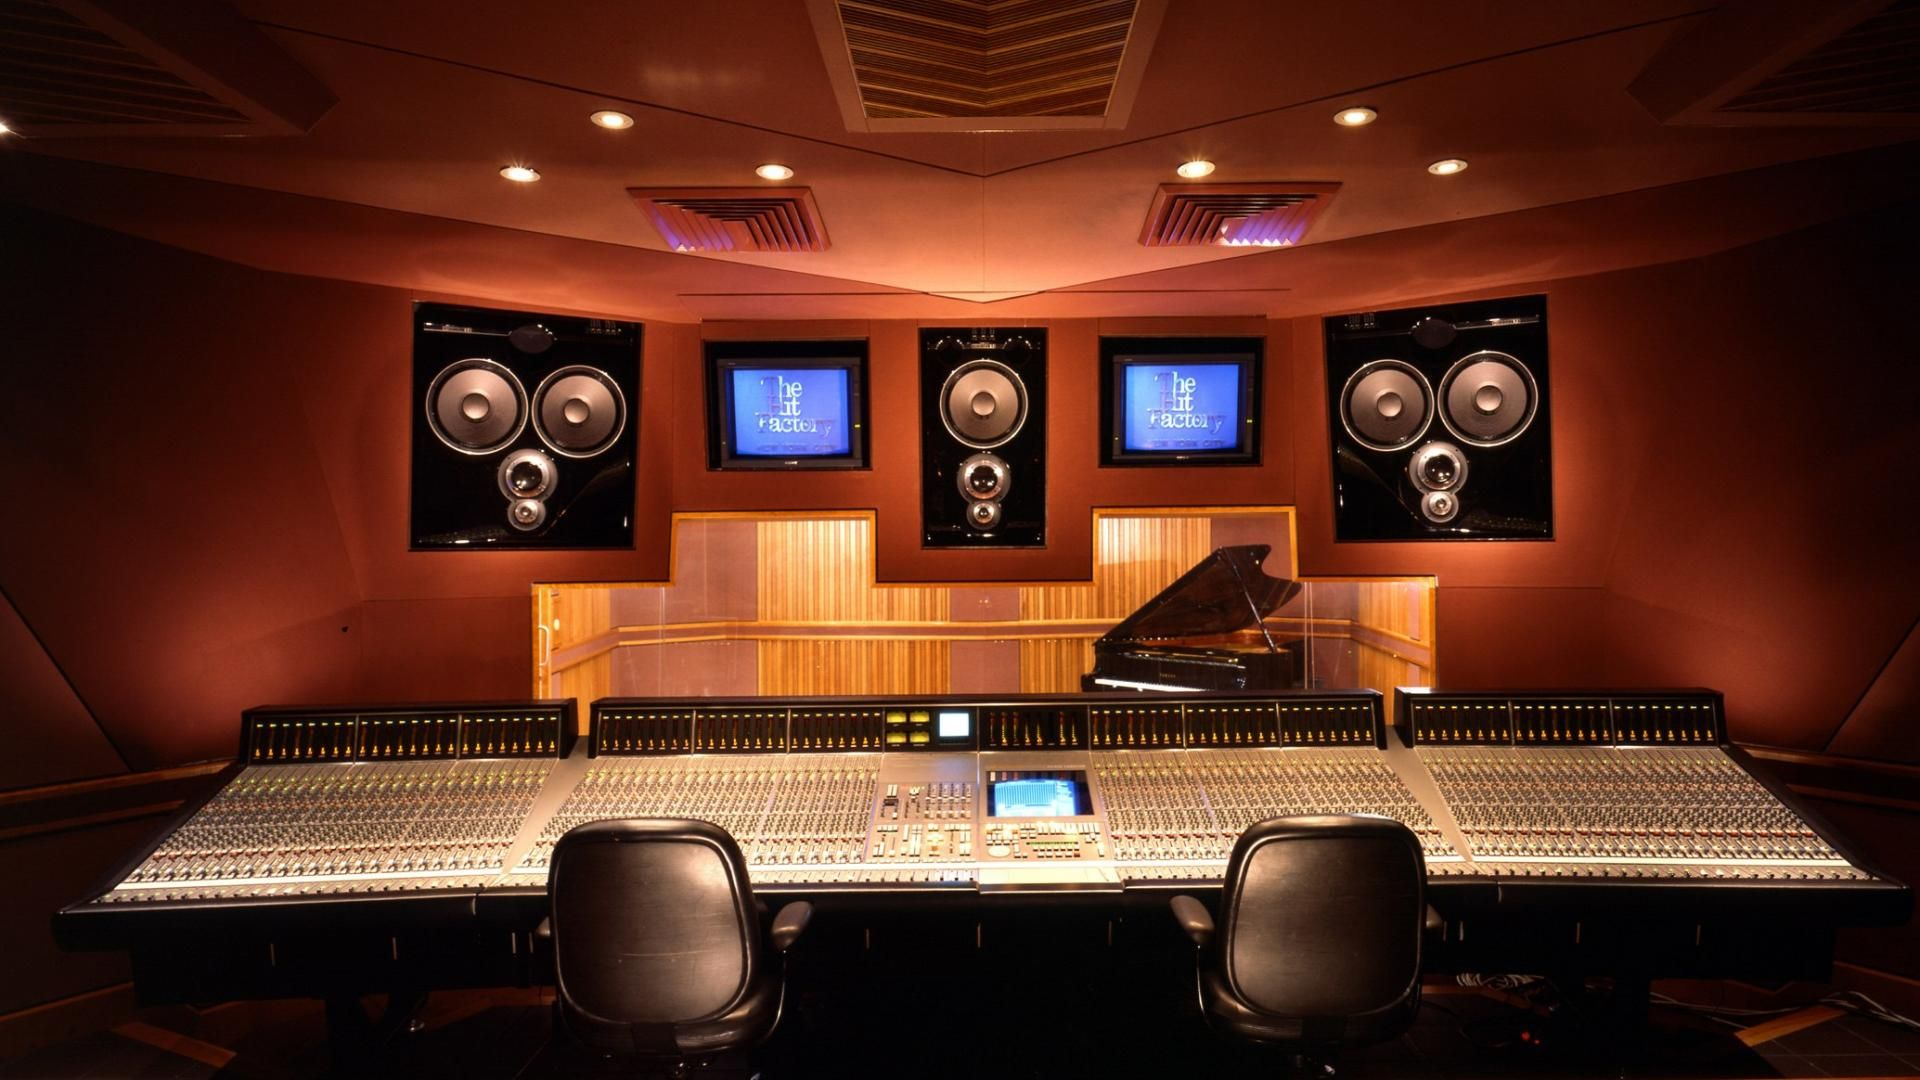 Cool Recording Studio Wallpapers